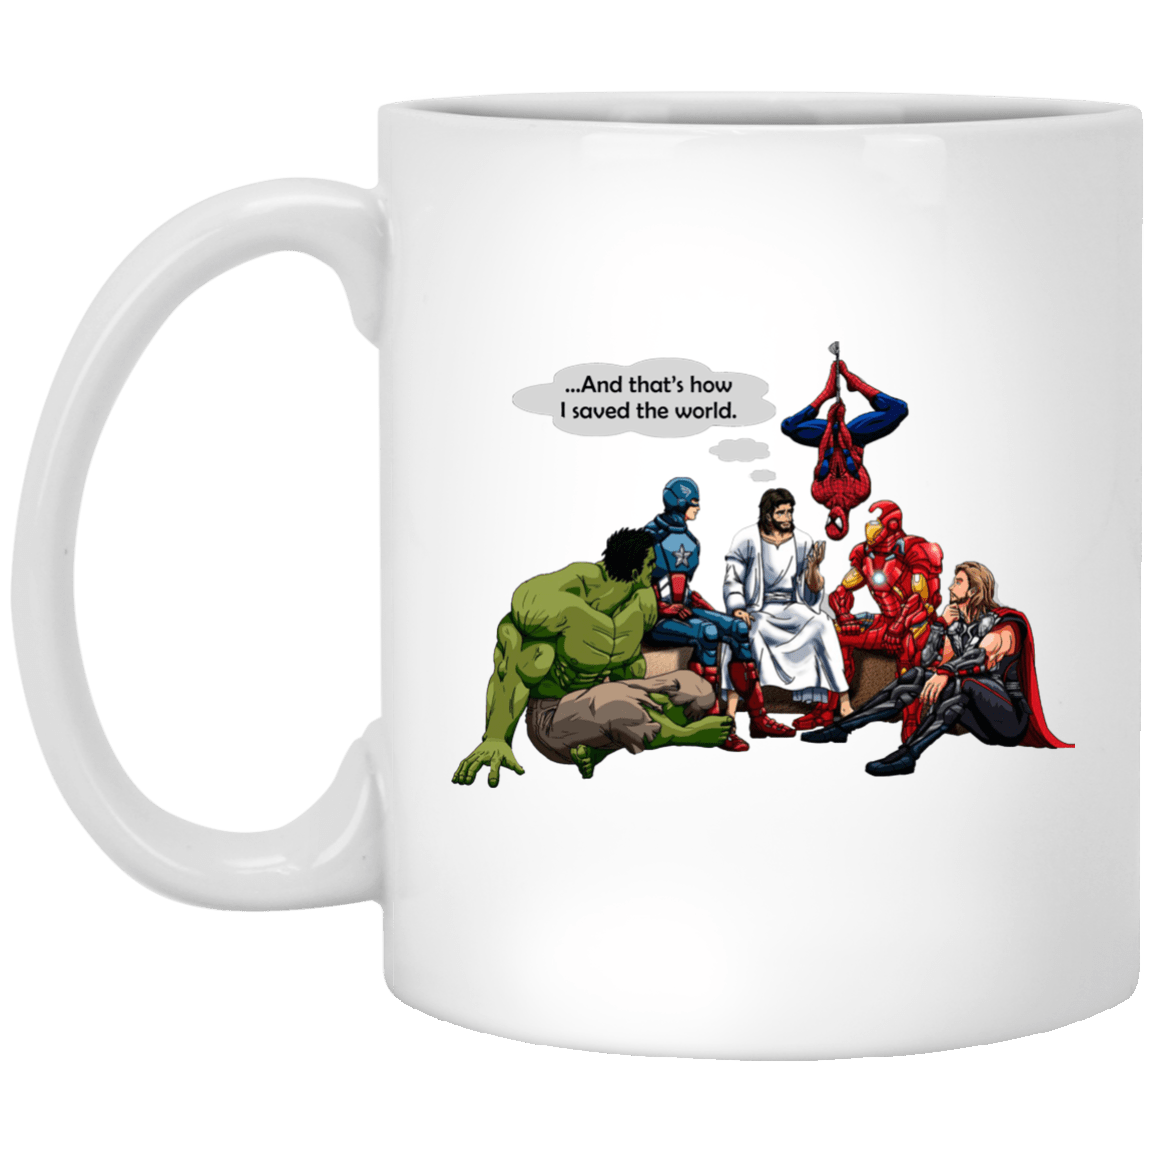 image - Jesus and Superheroes mug